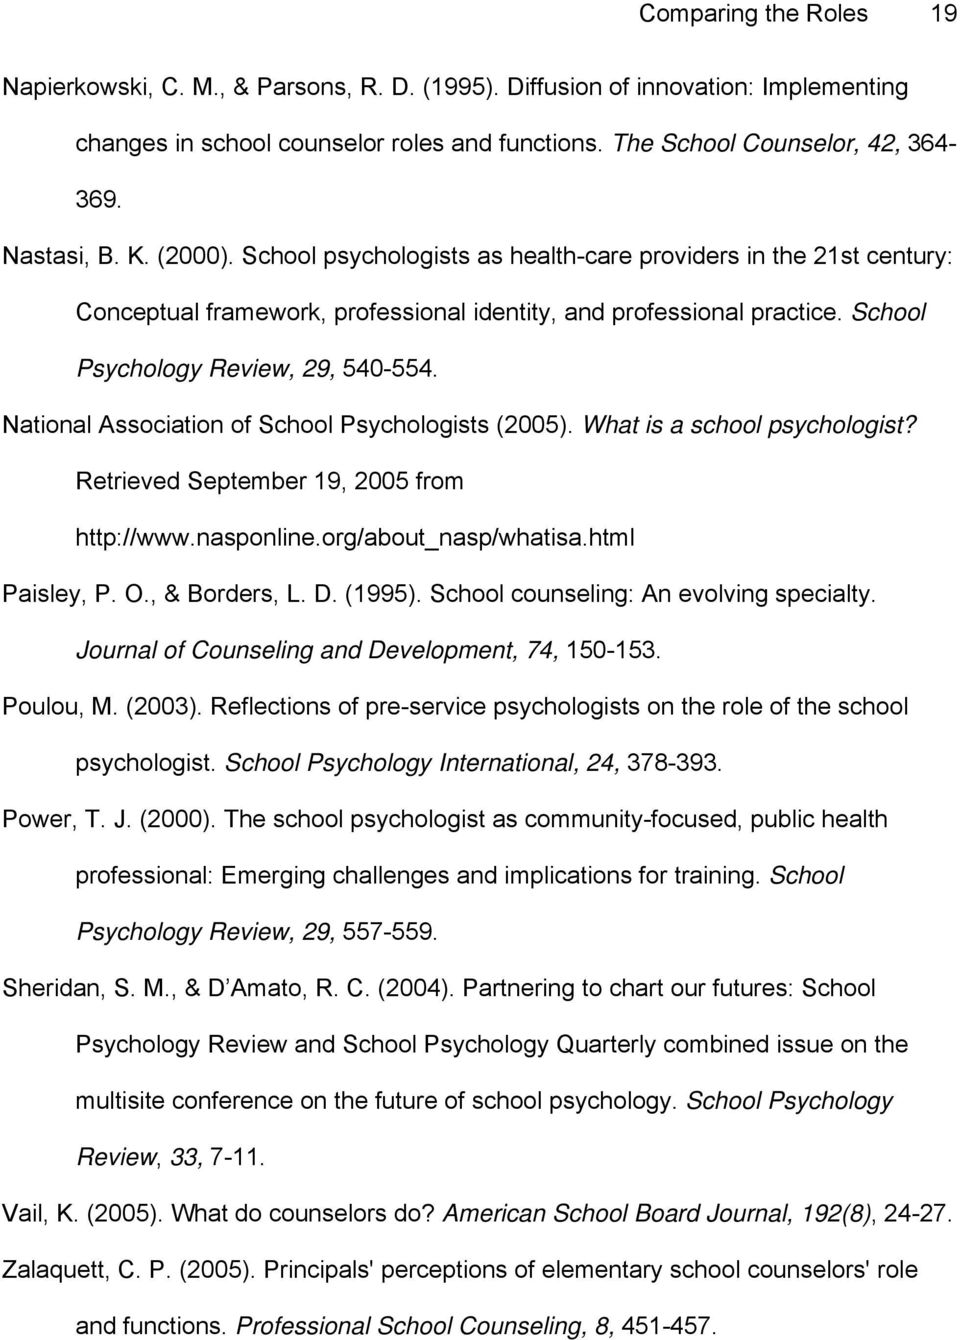 National Association of School Psychologists (2005). What is a school psychologist? Retrieved September 19, 2005 from http://www.nasponline.org/about_nasp/whatisa.html Paisley, P. O., & Borders, L. D.